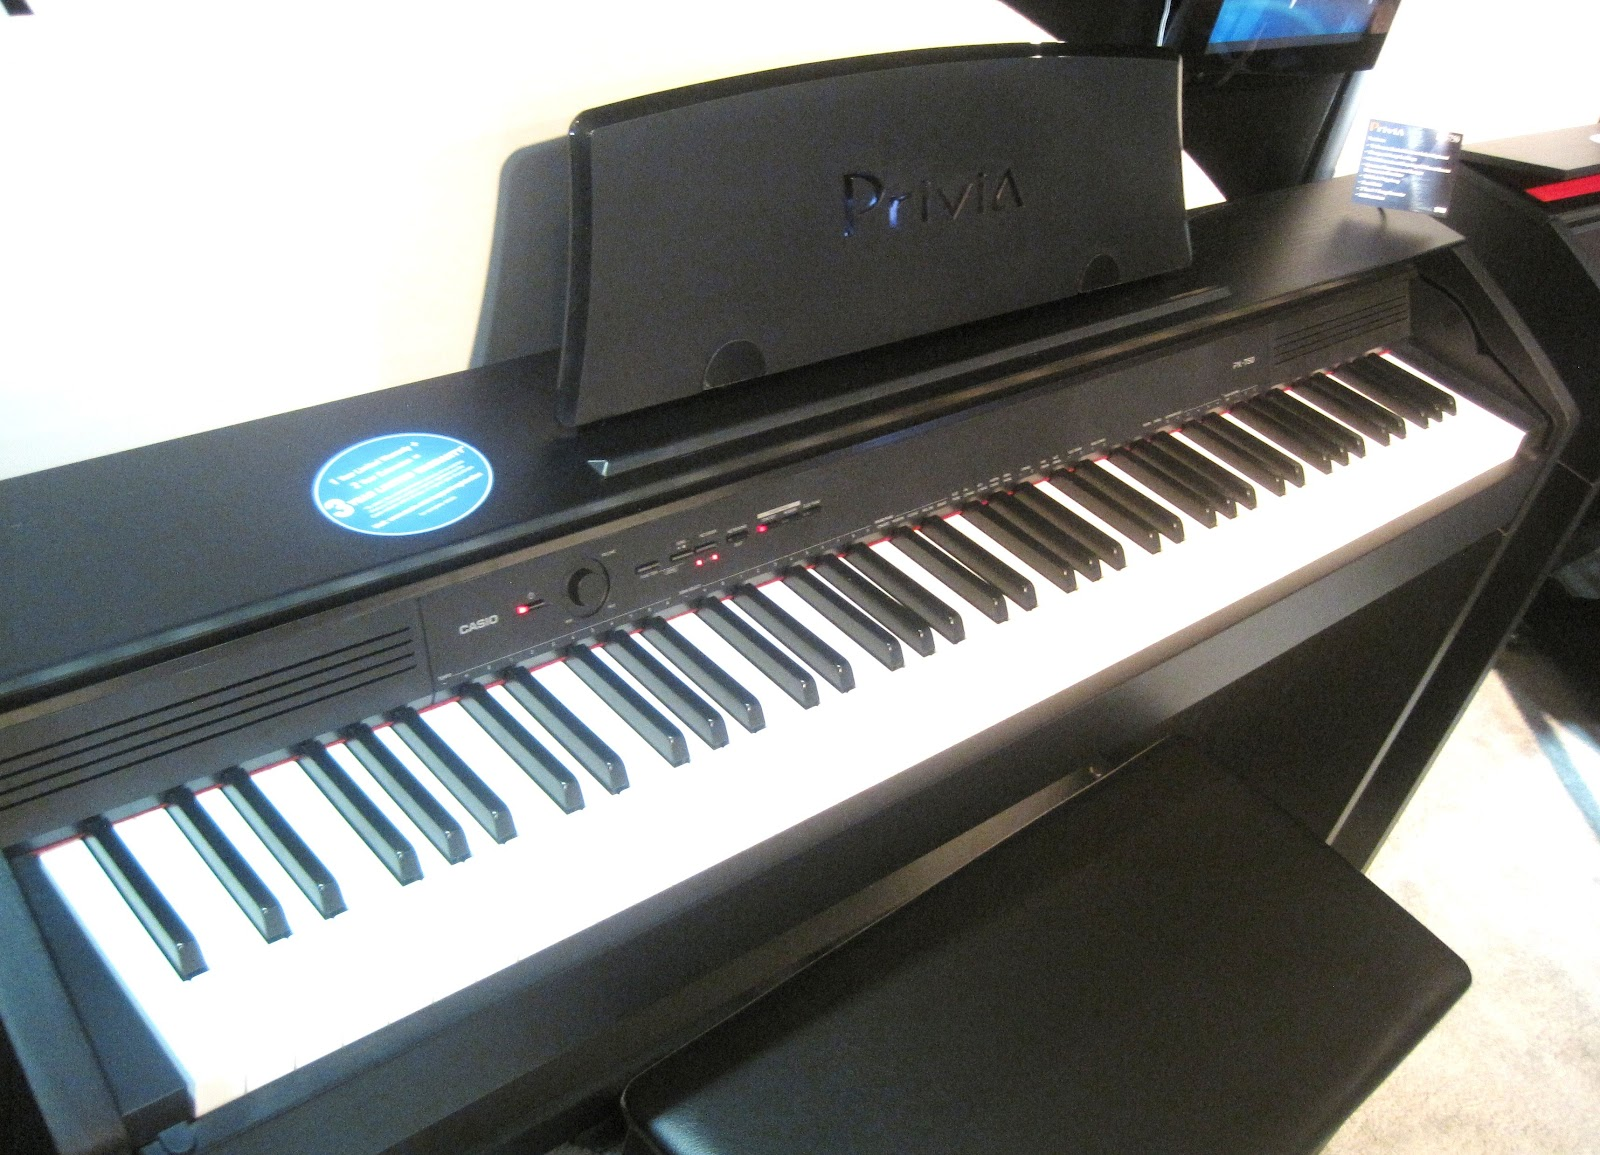 az piano reviews review casio px750 privia digital piano recommended new low priced. Black Bedroom Furniture Sets. Home Design Ideas